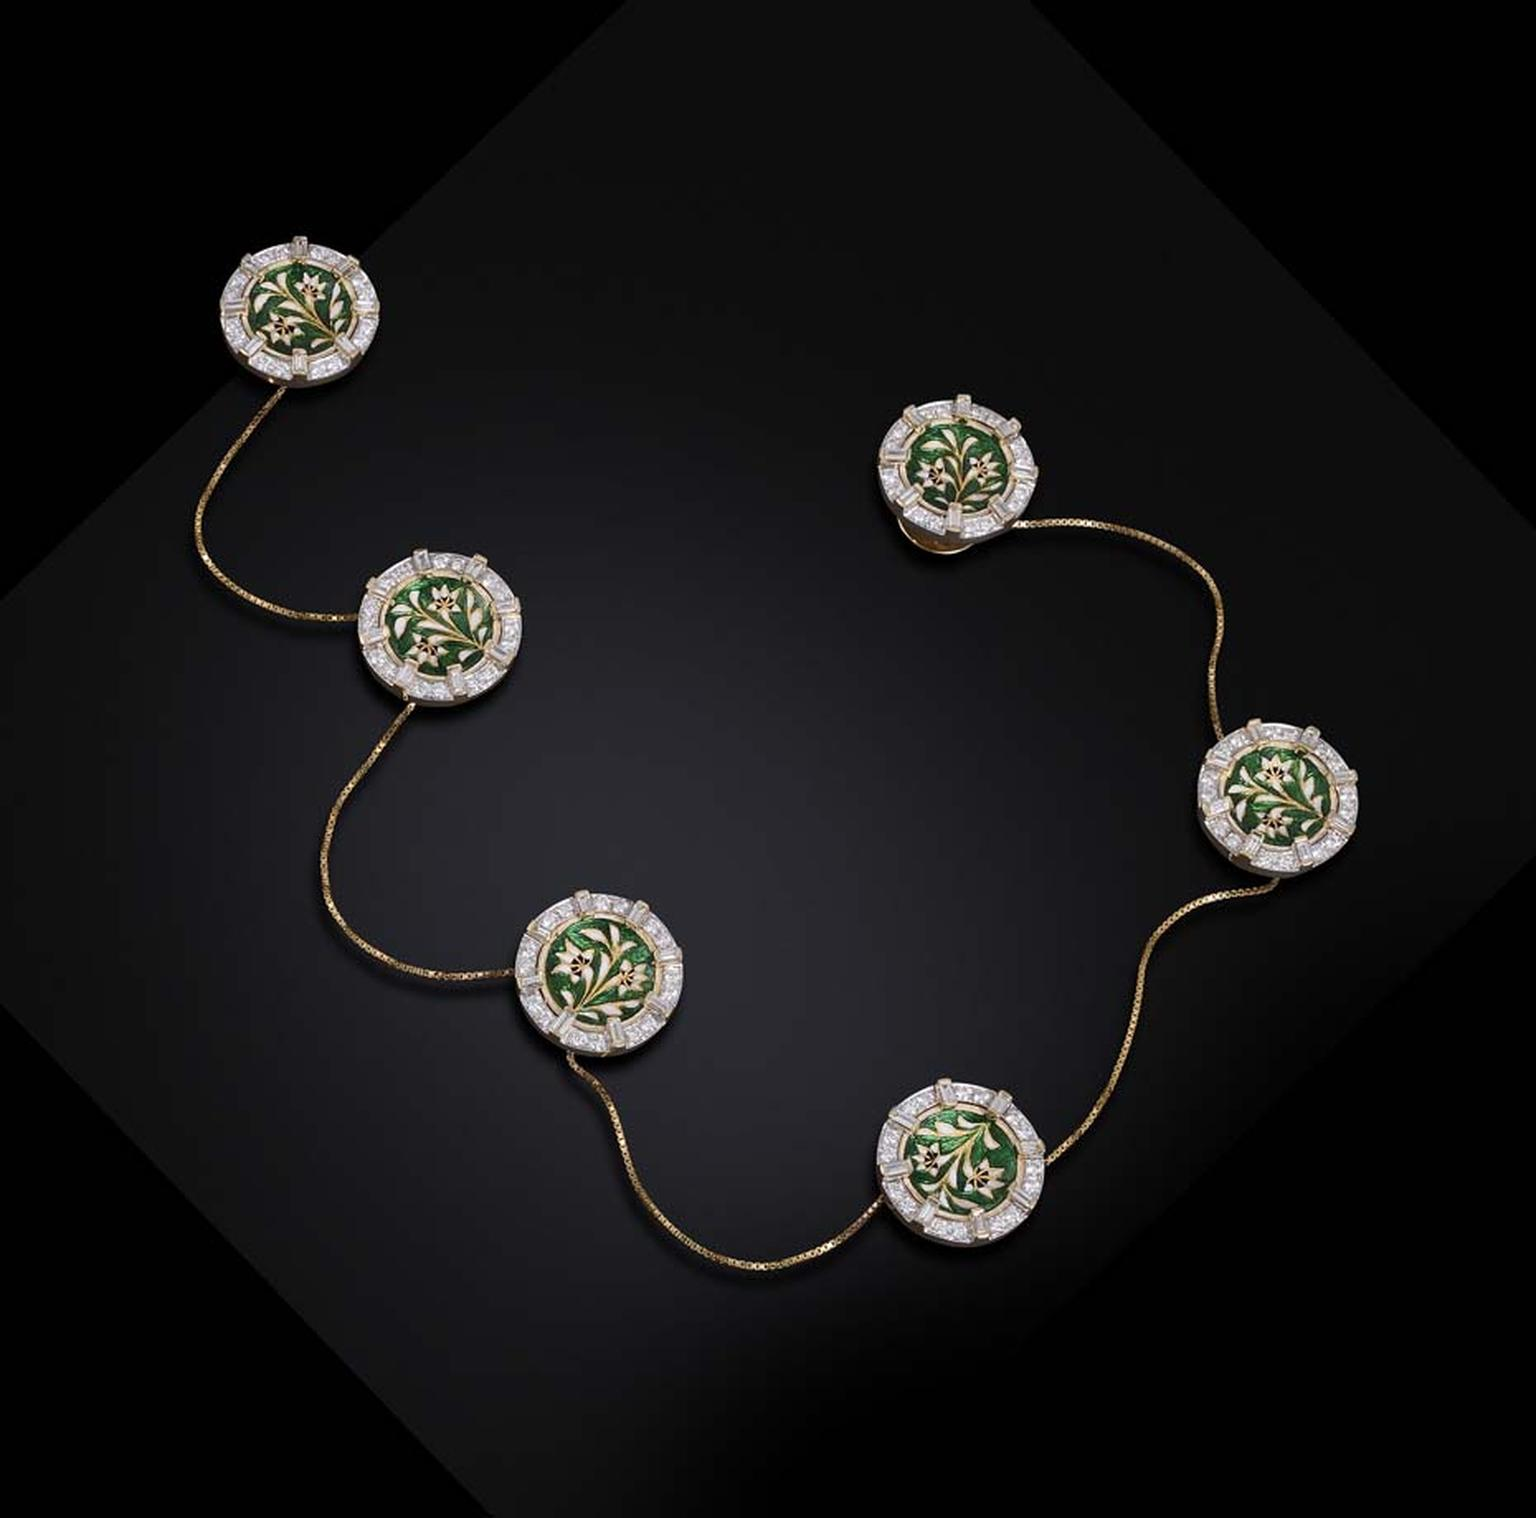 Farah Khan's diamond kurta buttons with rich green and white floral enamel are attached by gold chains.